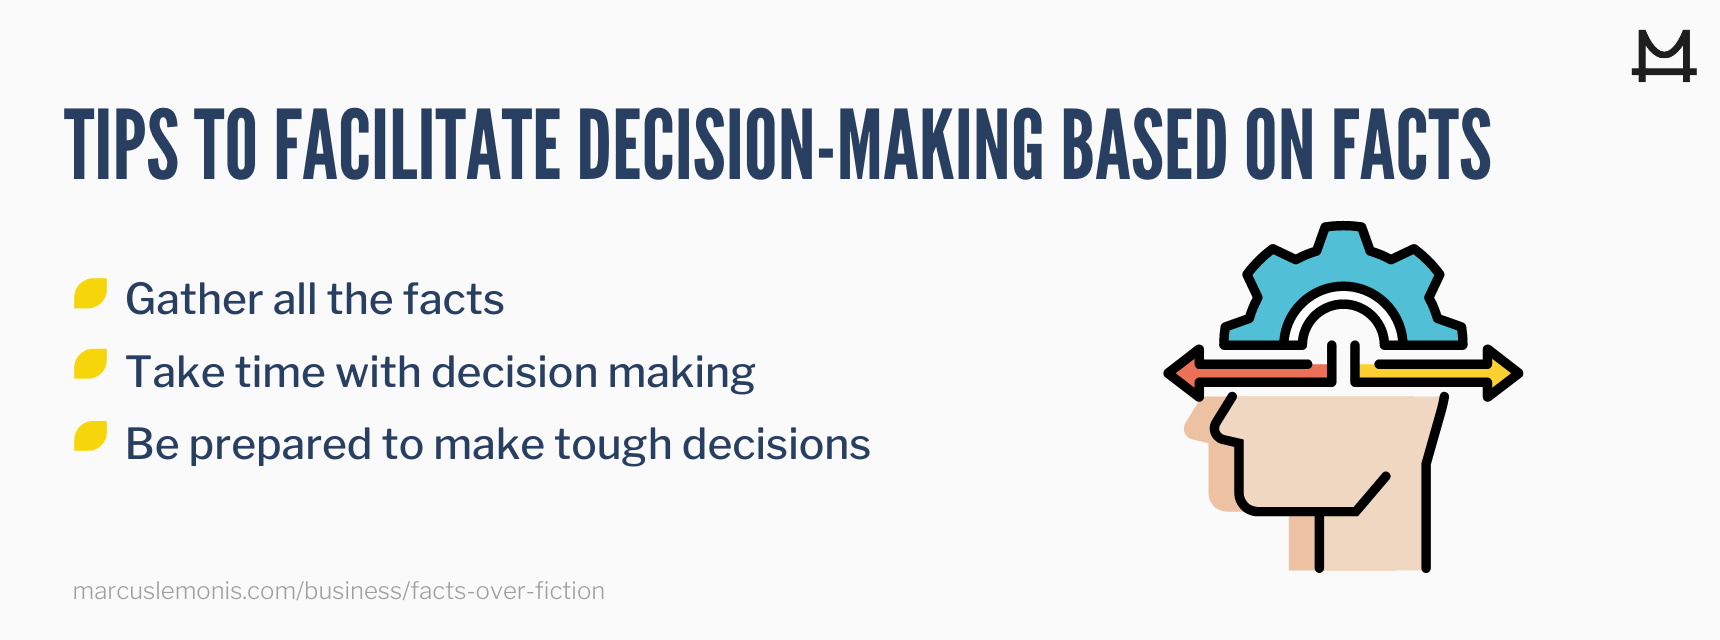 List of tips to facilitate decision-making based on facts